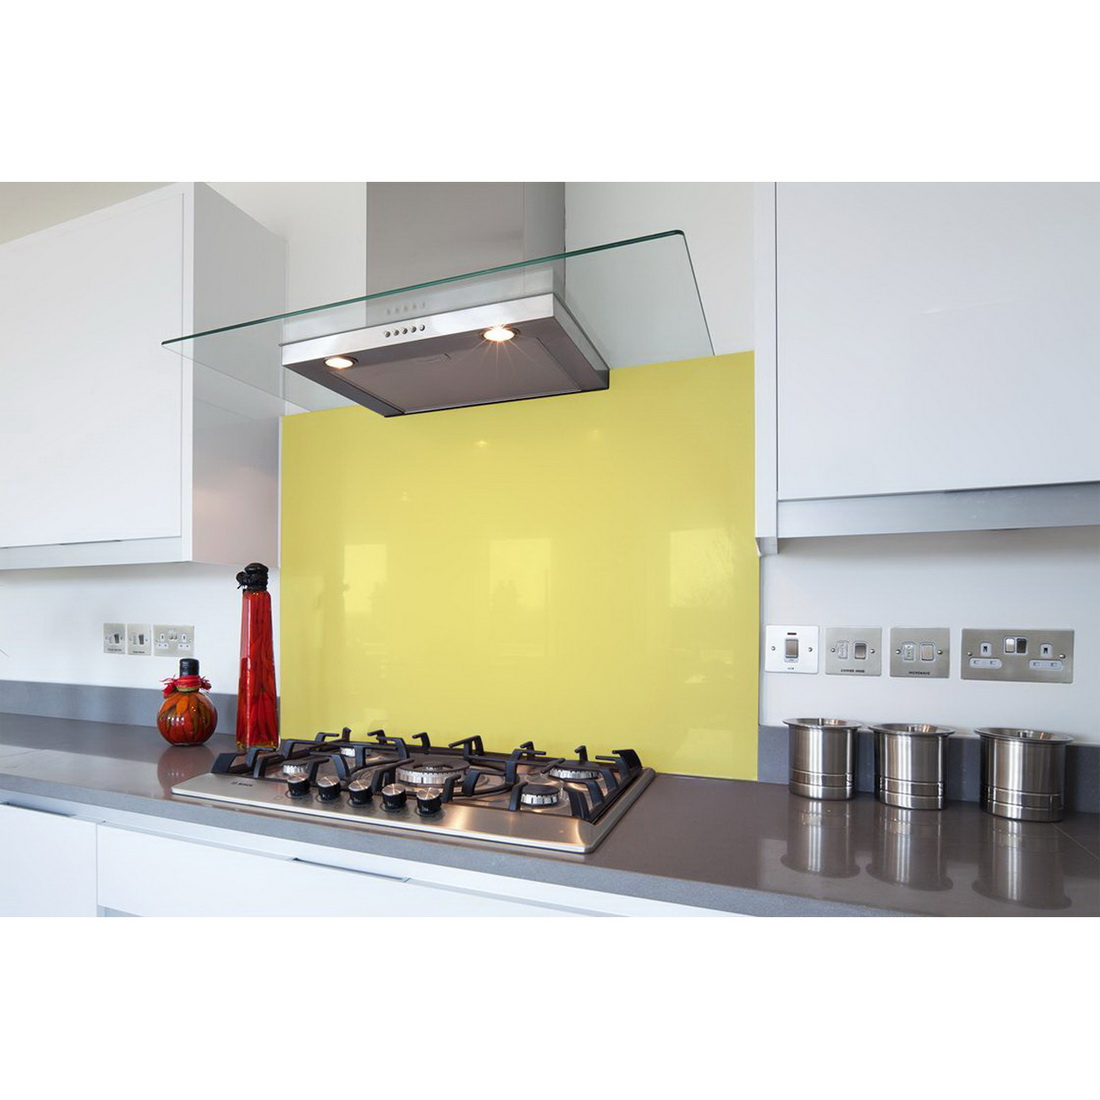 Splashback 750 x 600 mm Silver 75X65SPLASHMS